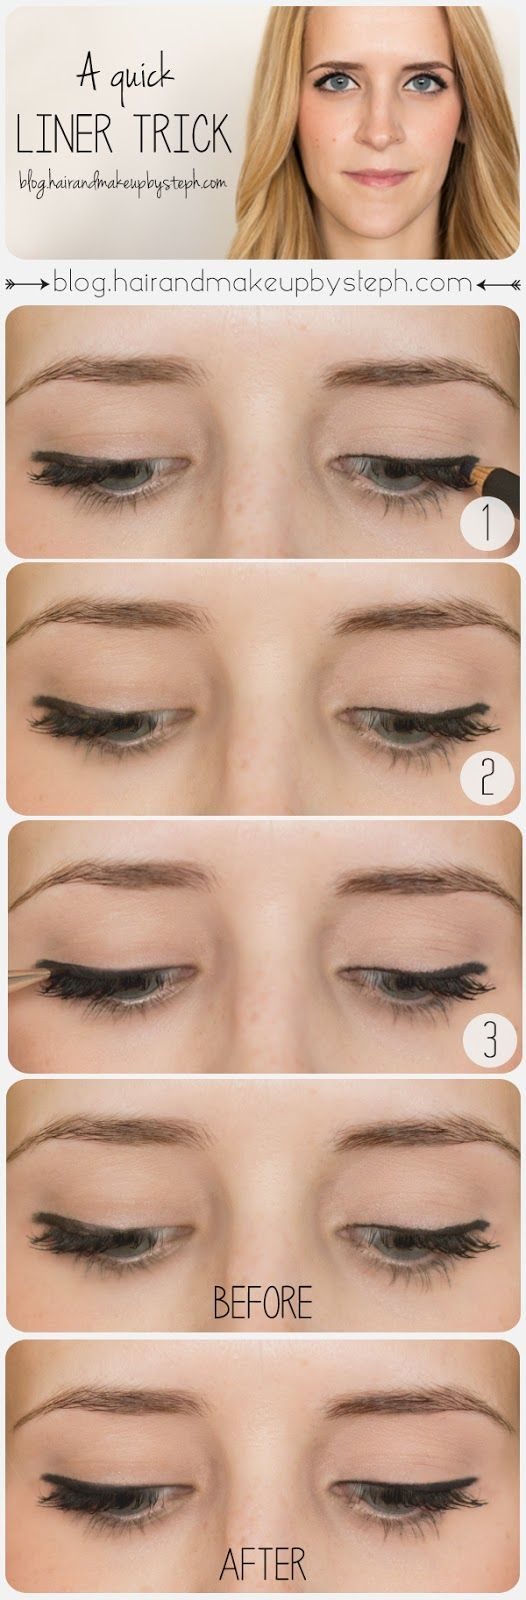 A Quick Liner Trick  1.  Apply your eyeliner as you normally would.  2.  This is how my liner tends to look when I do it quickly, without touching it up.  Uneven and messy. 3.  Using a short angle brush, retrace over your liner with black eyeshadow.  The black eyeshadow will smooth out the edges, fill in any light spots and soften everything. Voila